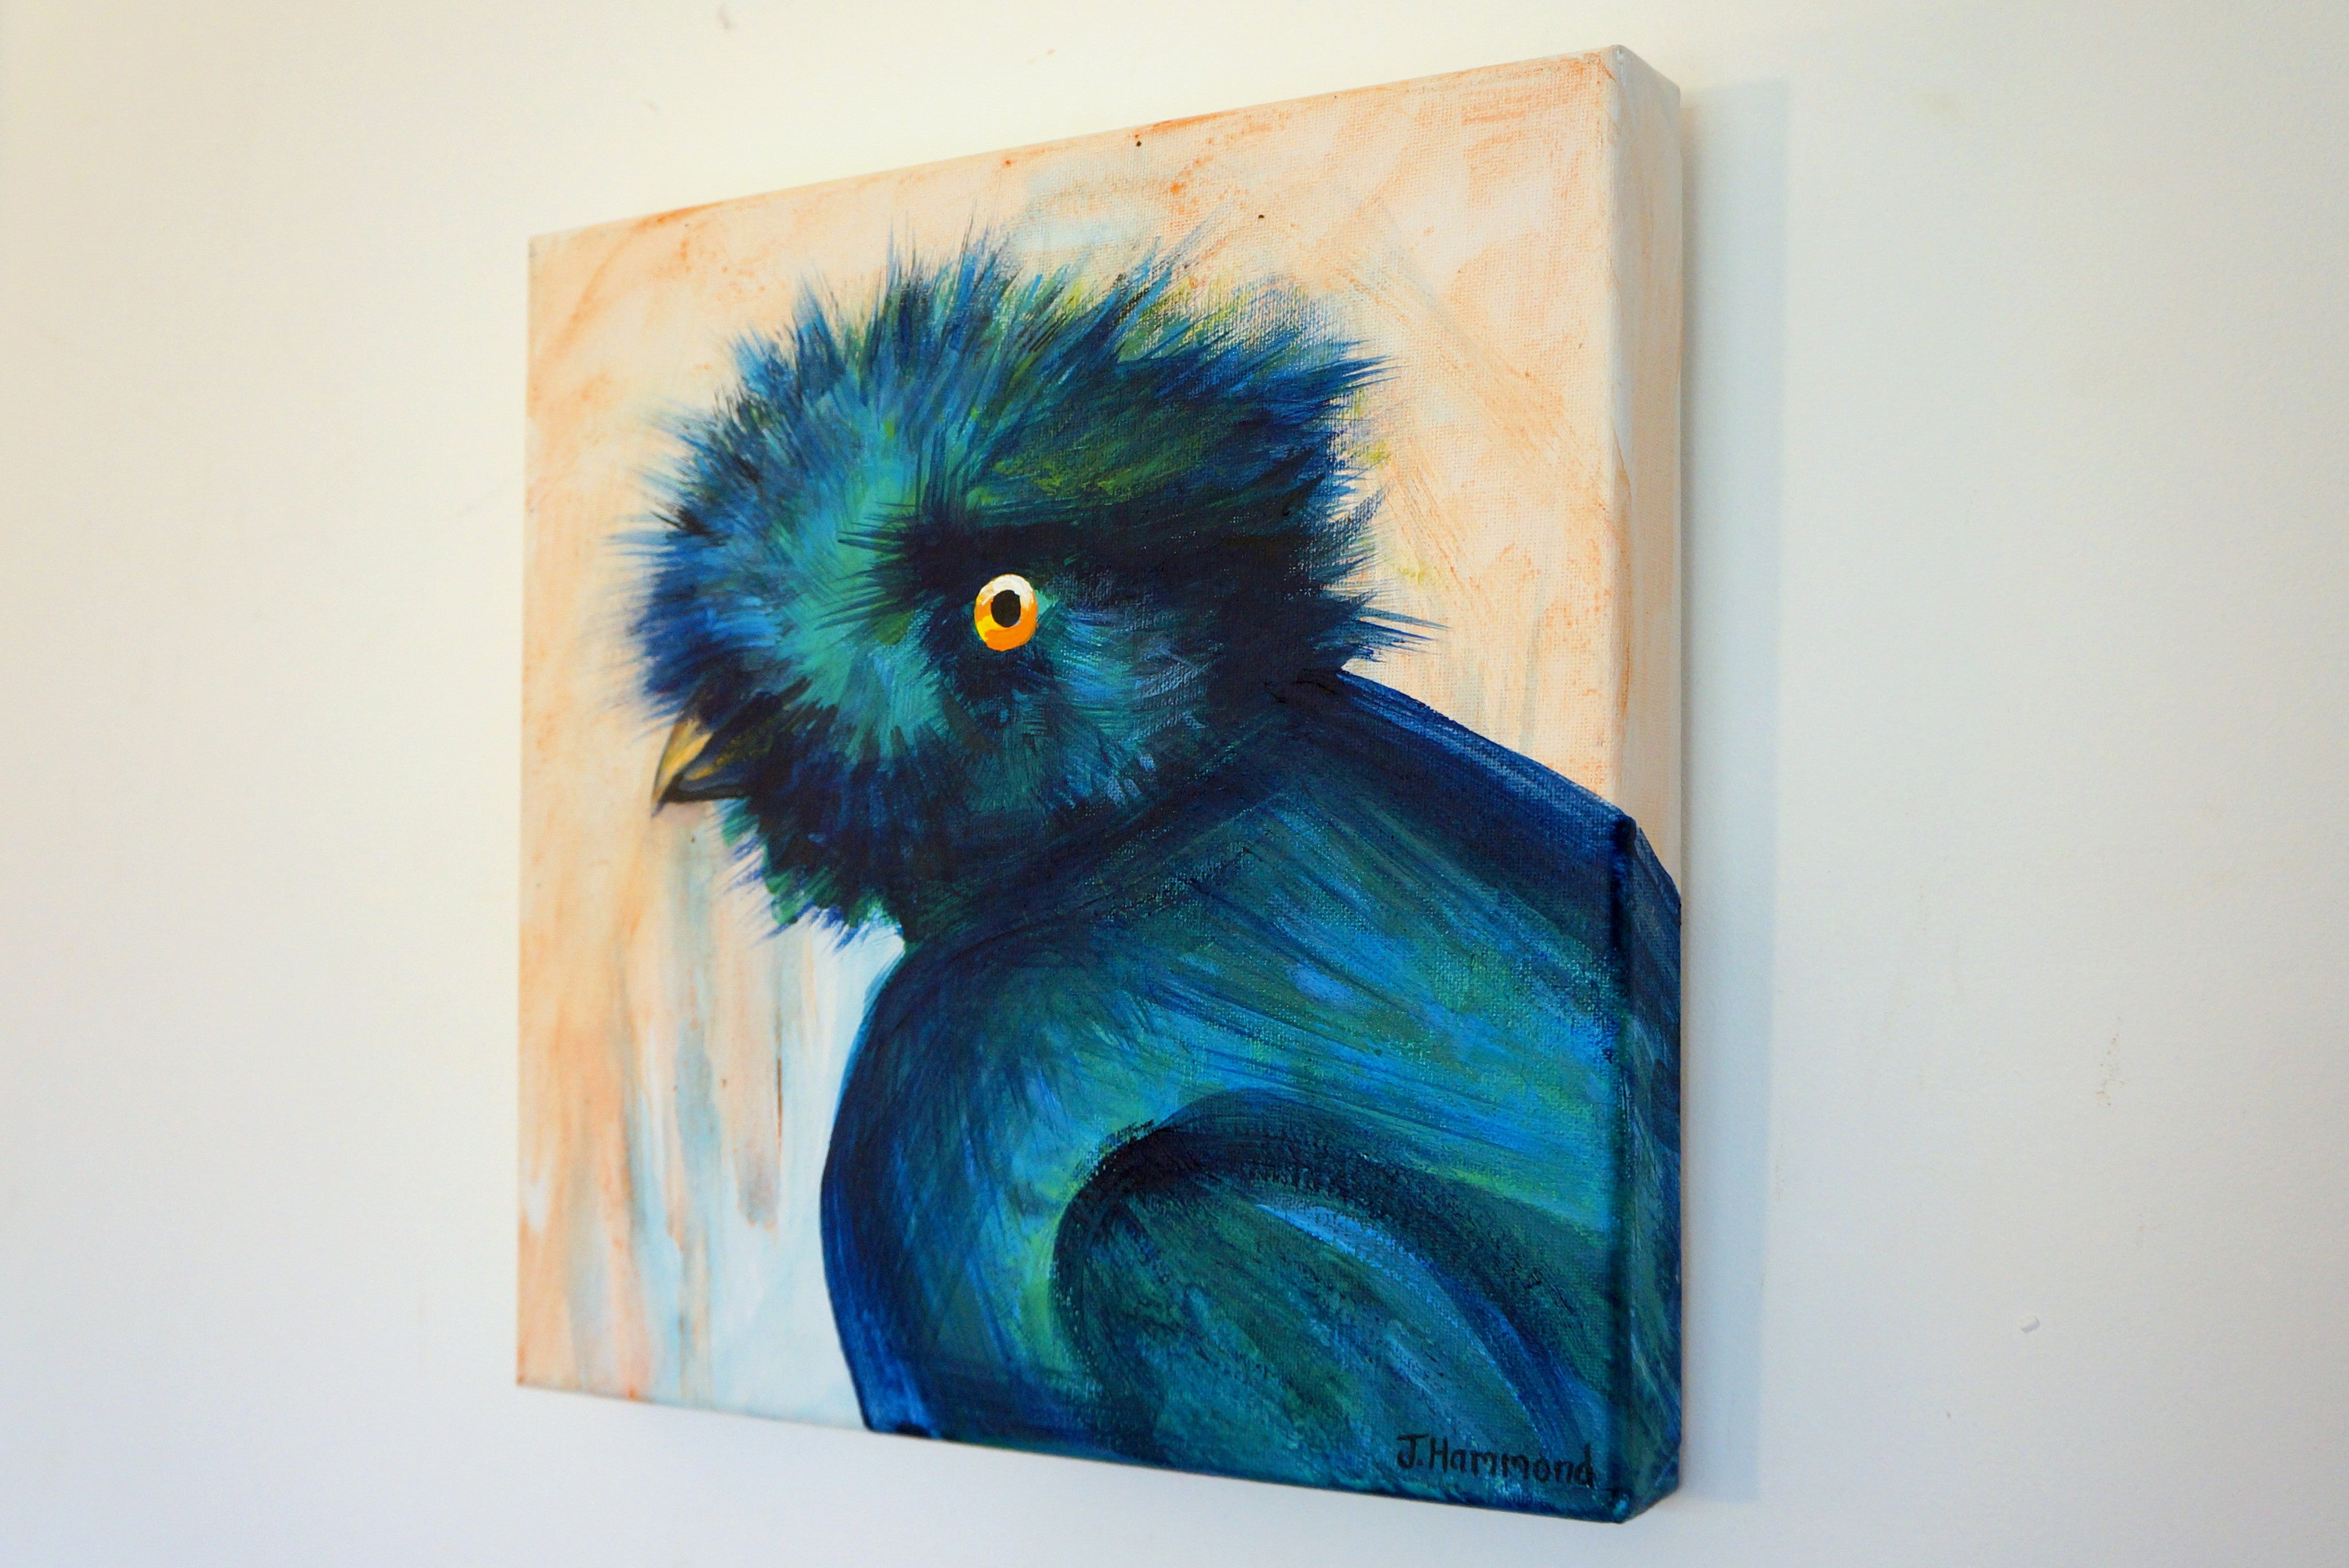 Bad Hair Day - Bird Portrait Painting